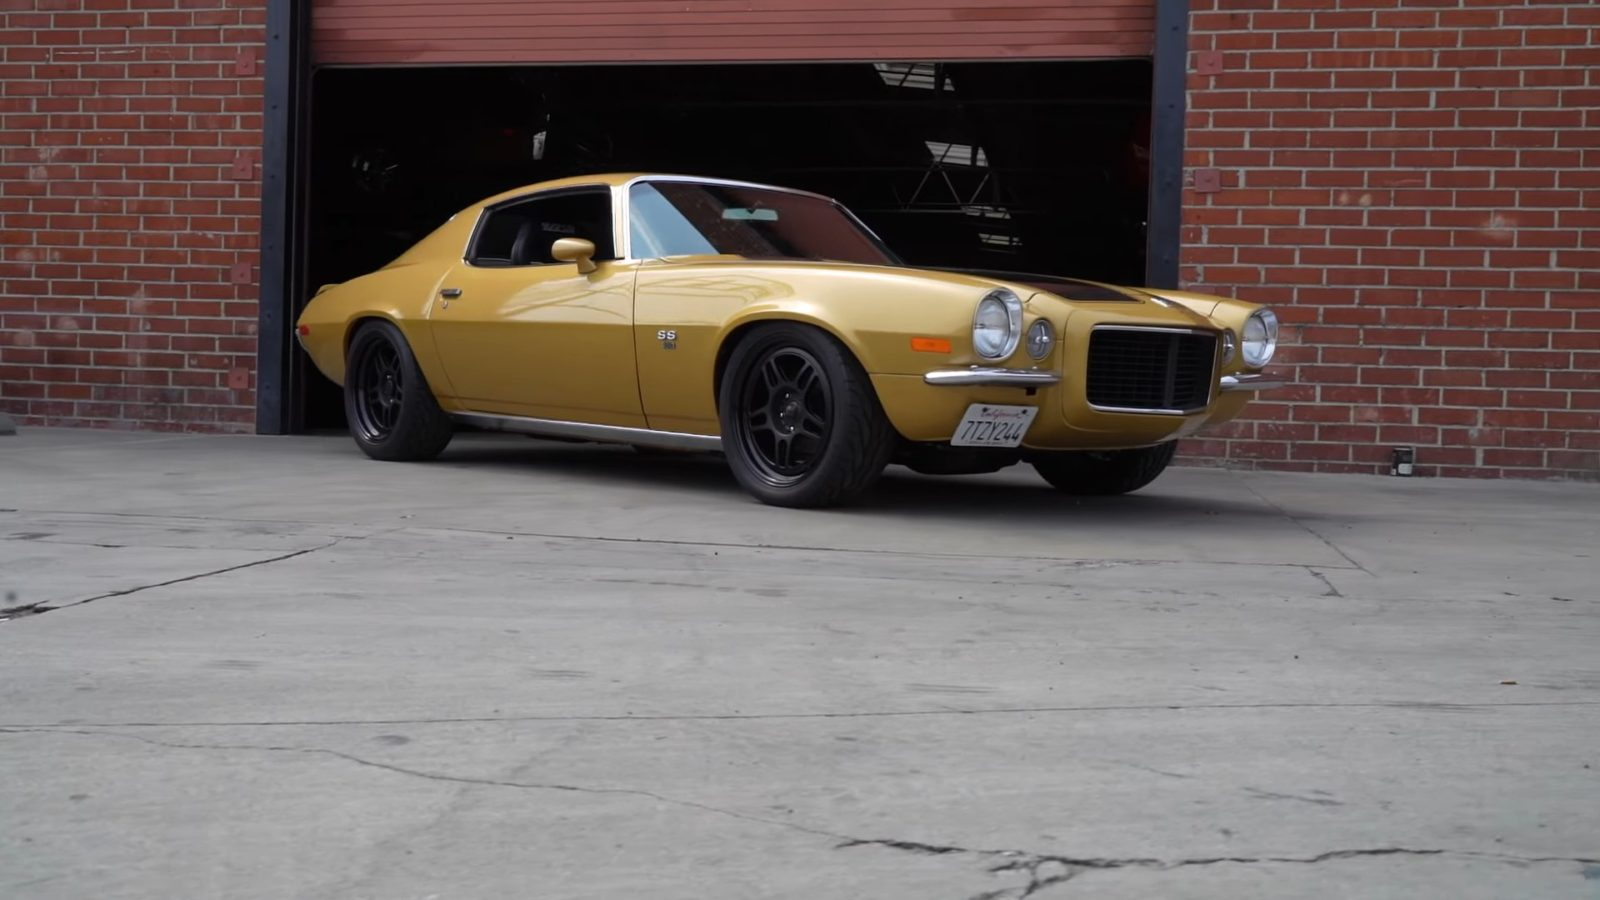 gold-and-black-1970-chevy-camaro-ss/rs-is-old-school-muscle-restomod-done-right